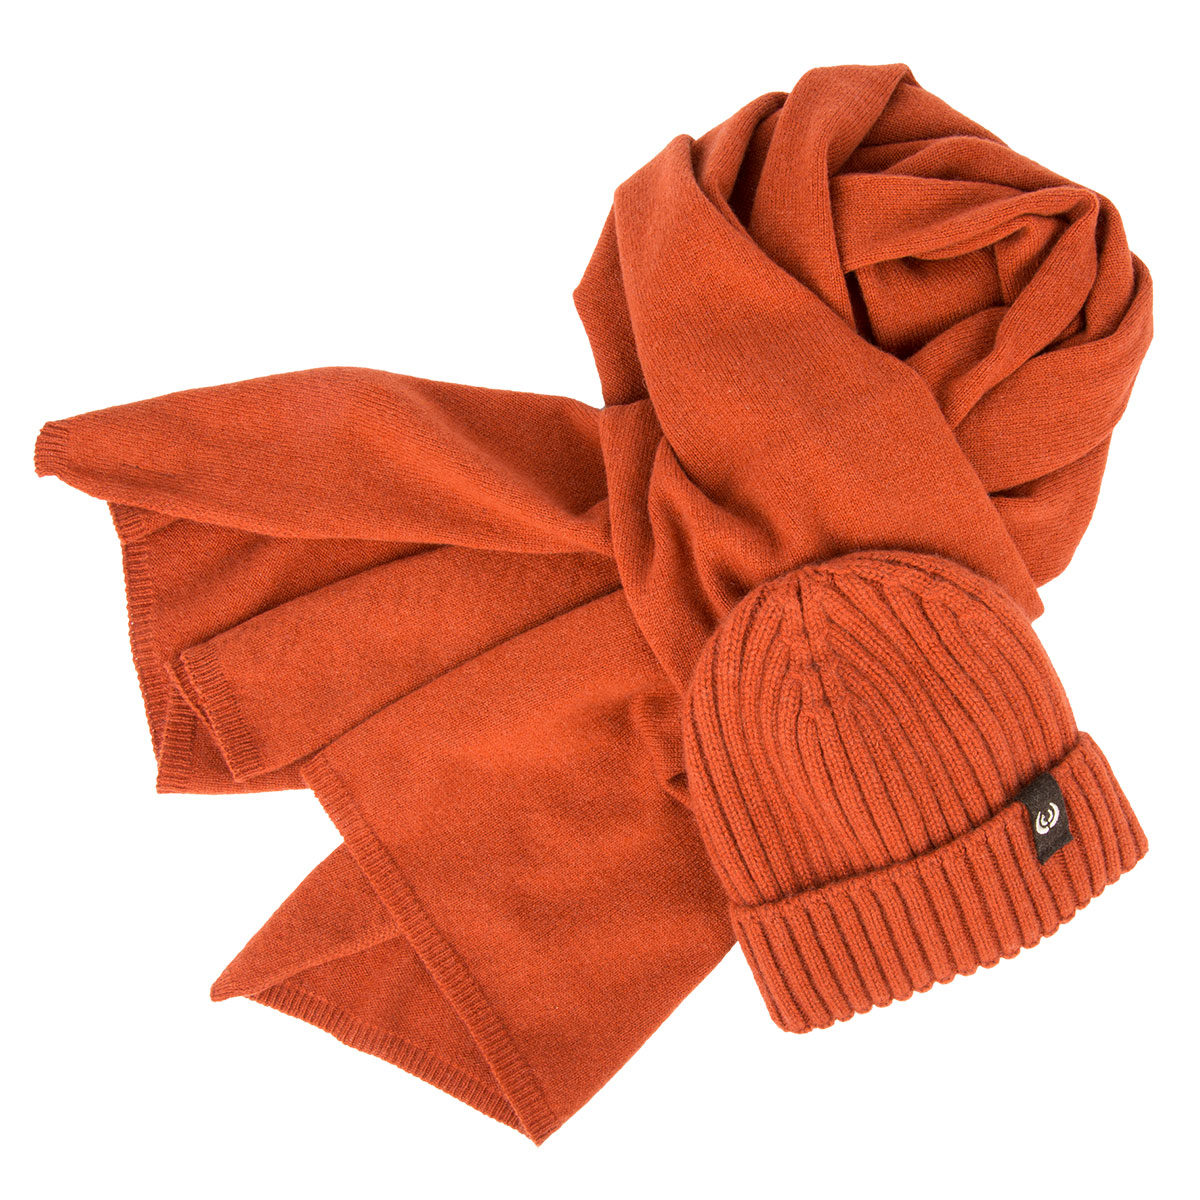 Keyler Set Winter Kaschmir Orange Mütze Schal Keylershop De